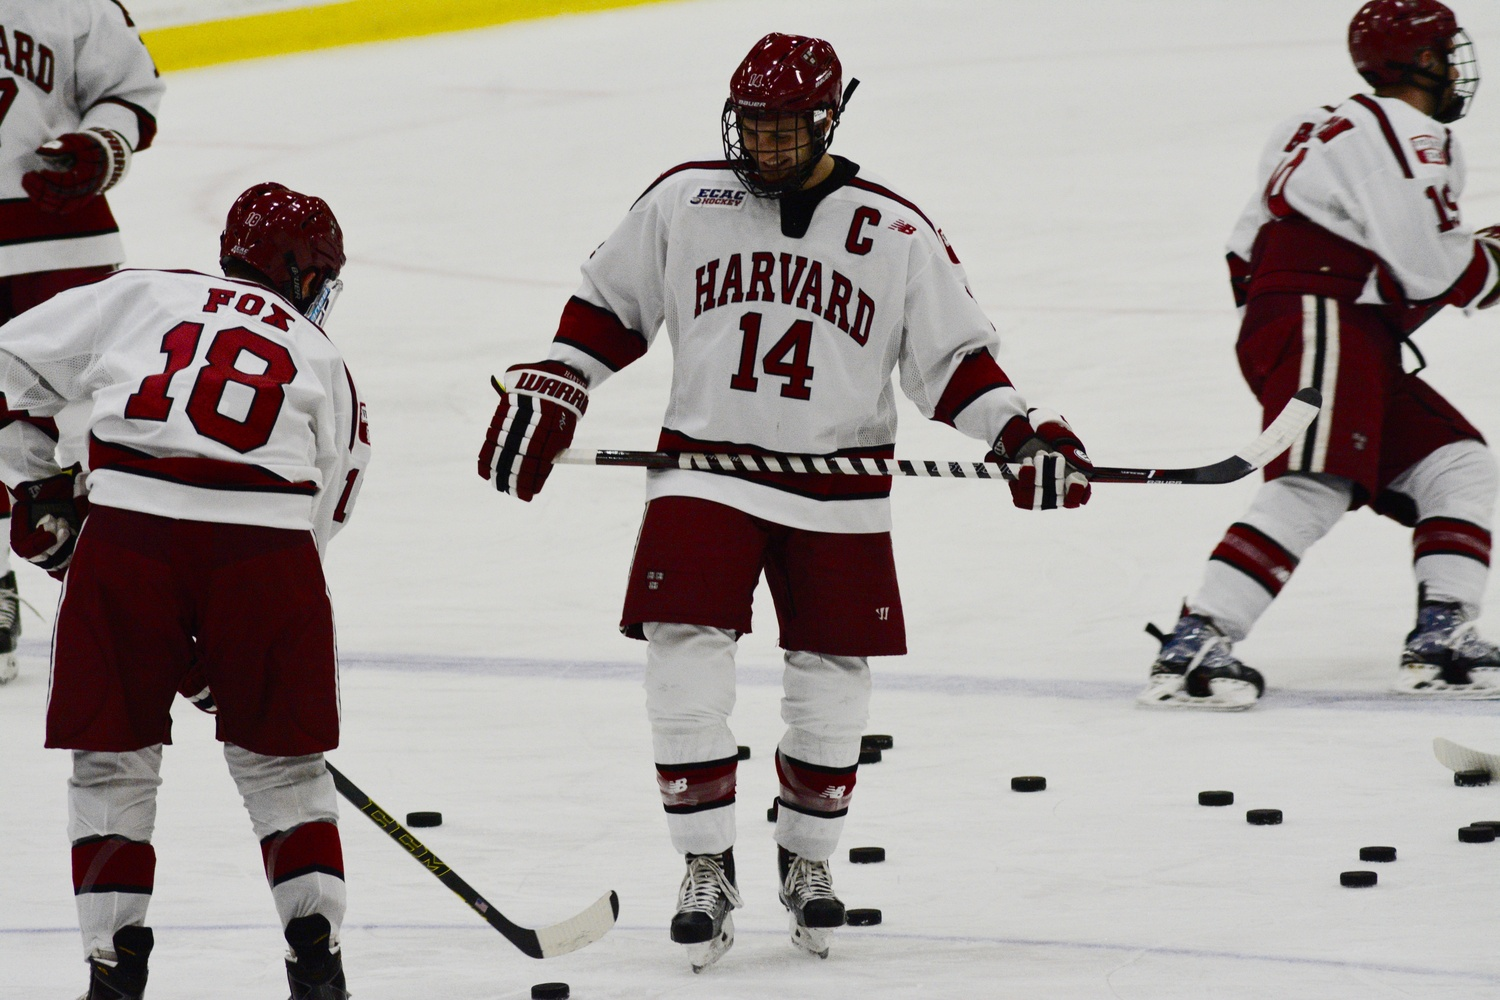 Adam Fox (18) and Alexander Kerfoot (14), shown during warmups, connected on Harvard's lone goal of the game Friday night.